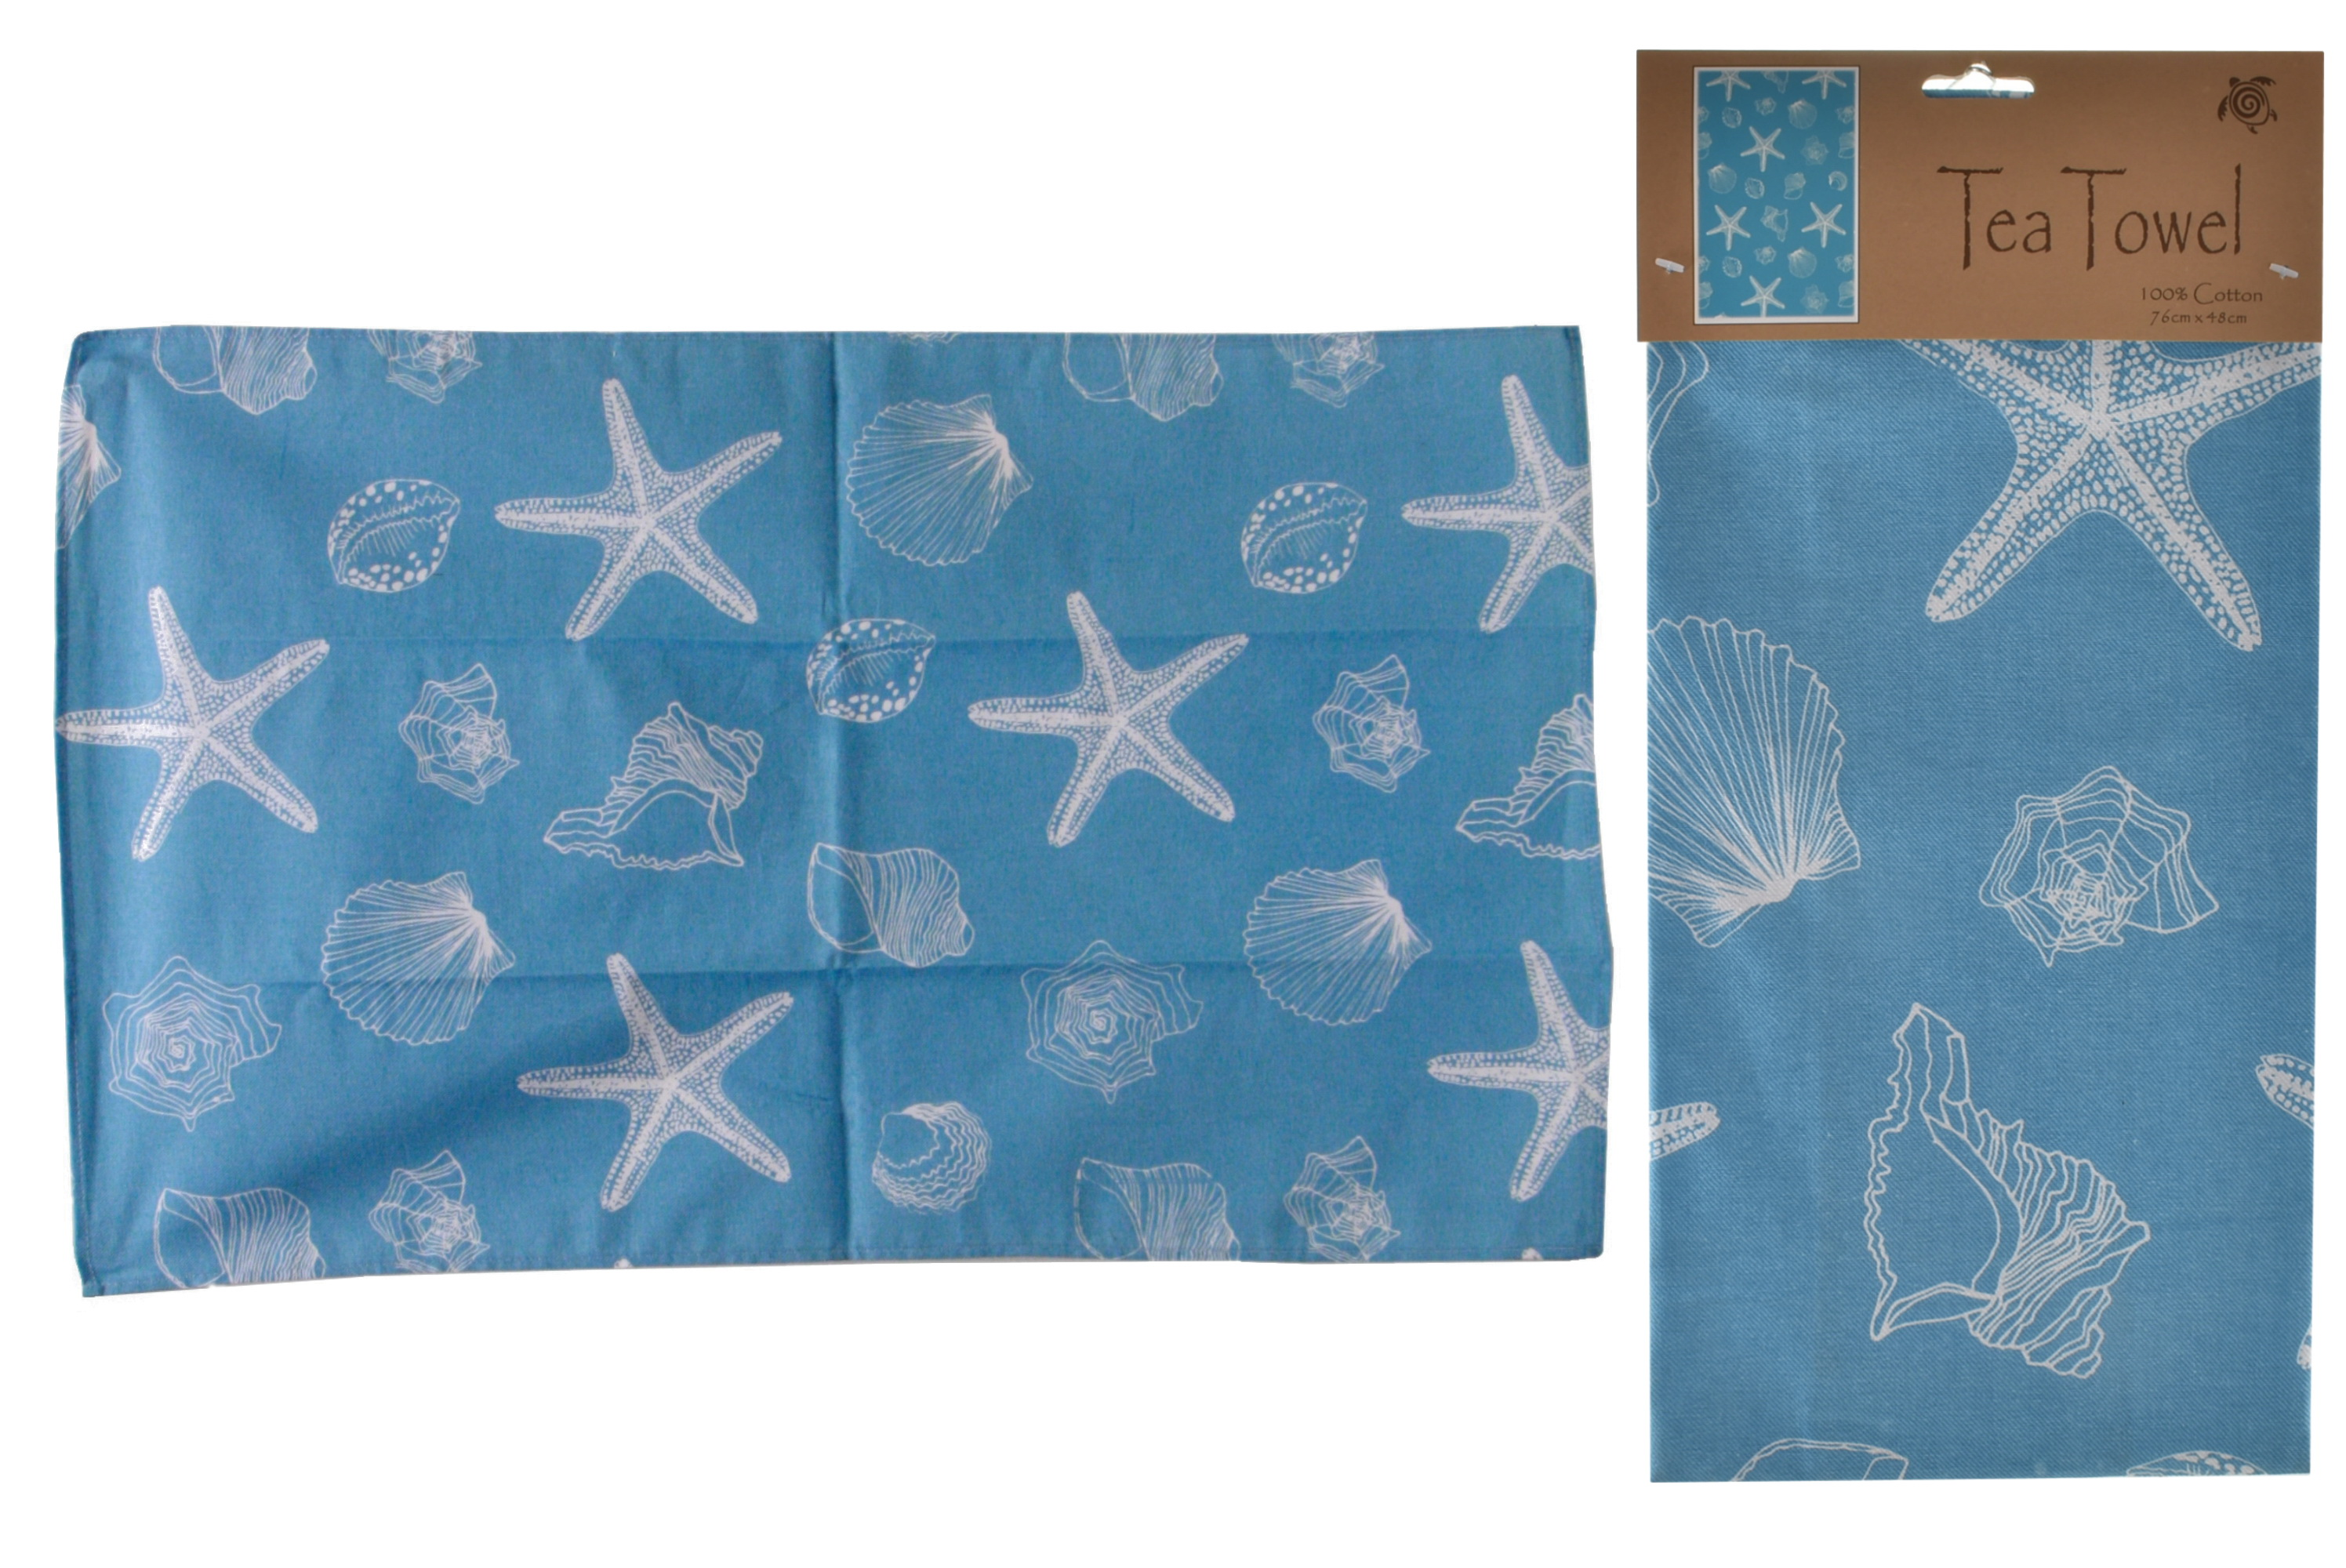 Shell Design Tea Towel 76cm x 48cm